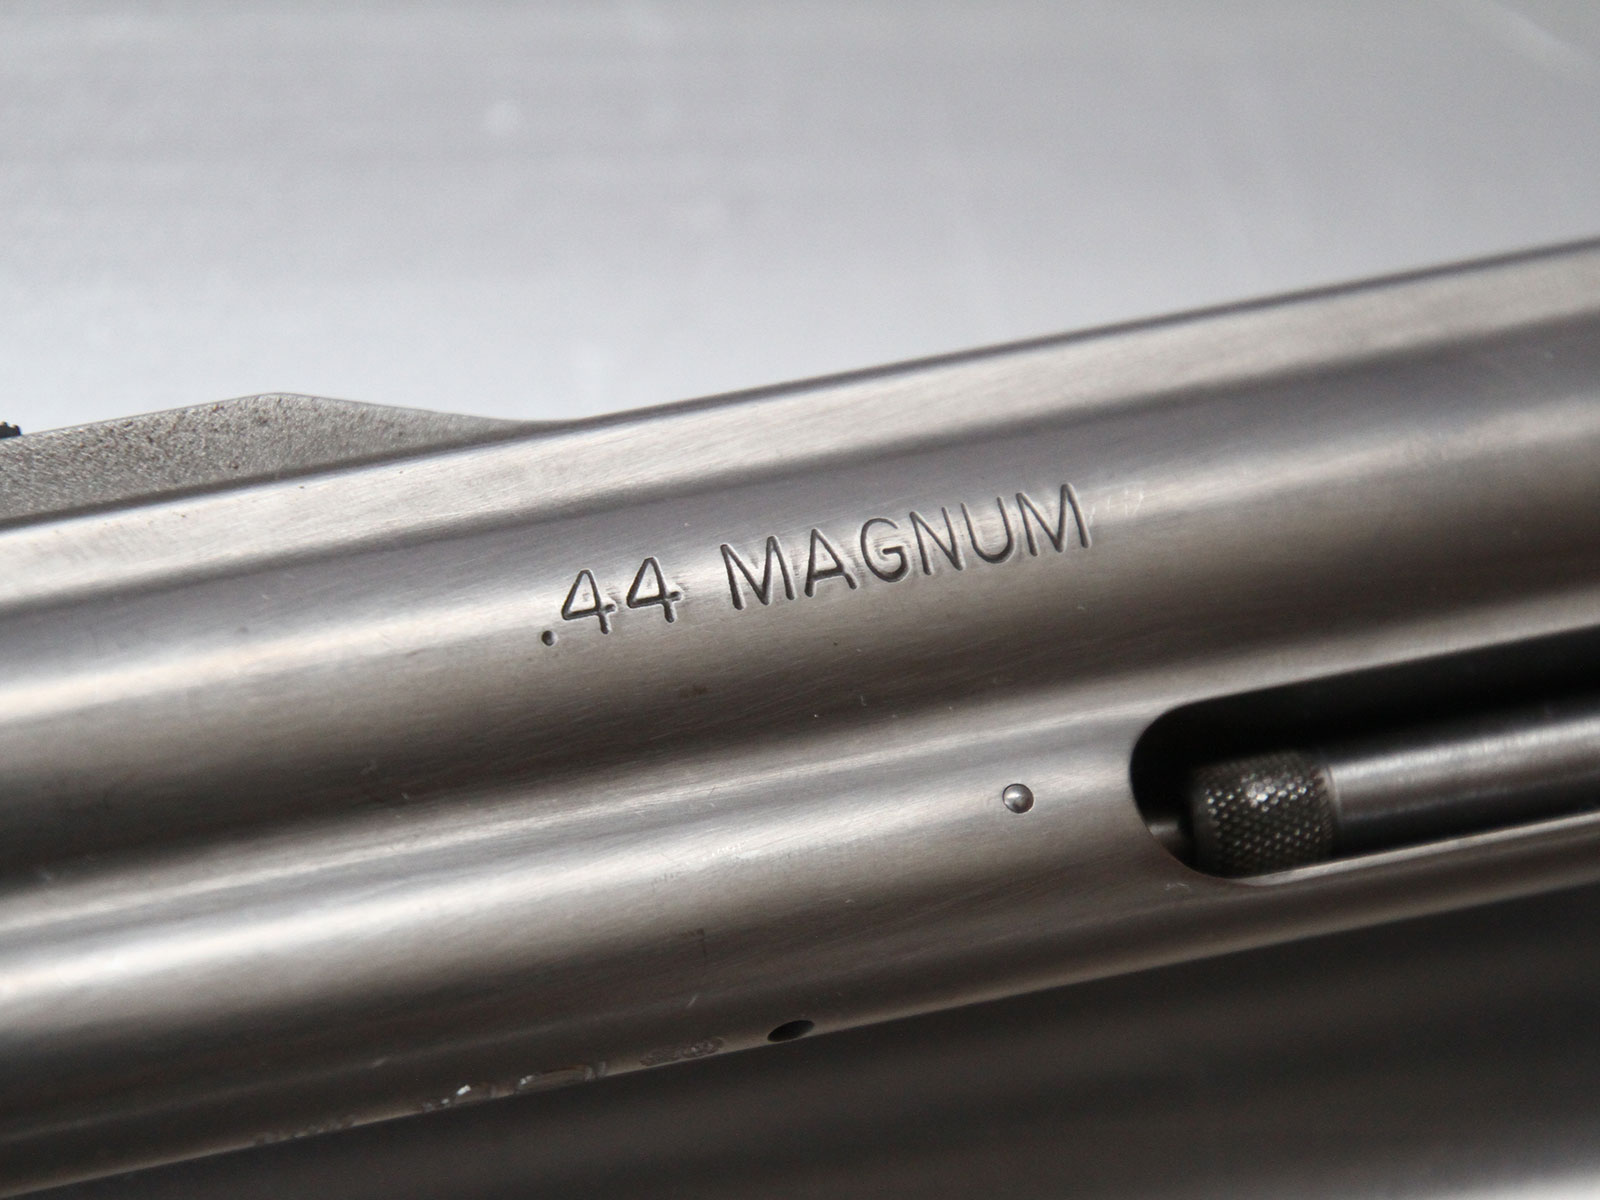 SH_Web_Wir_Waffen_Smith-Wesson-44-Magnum-2_1800x1200